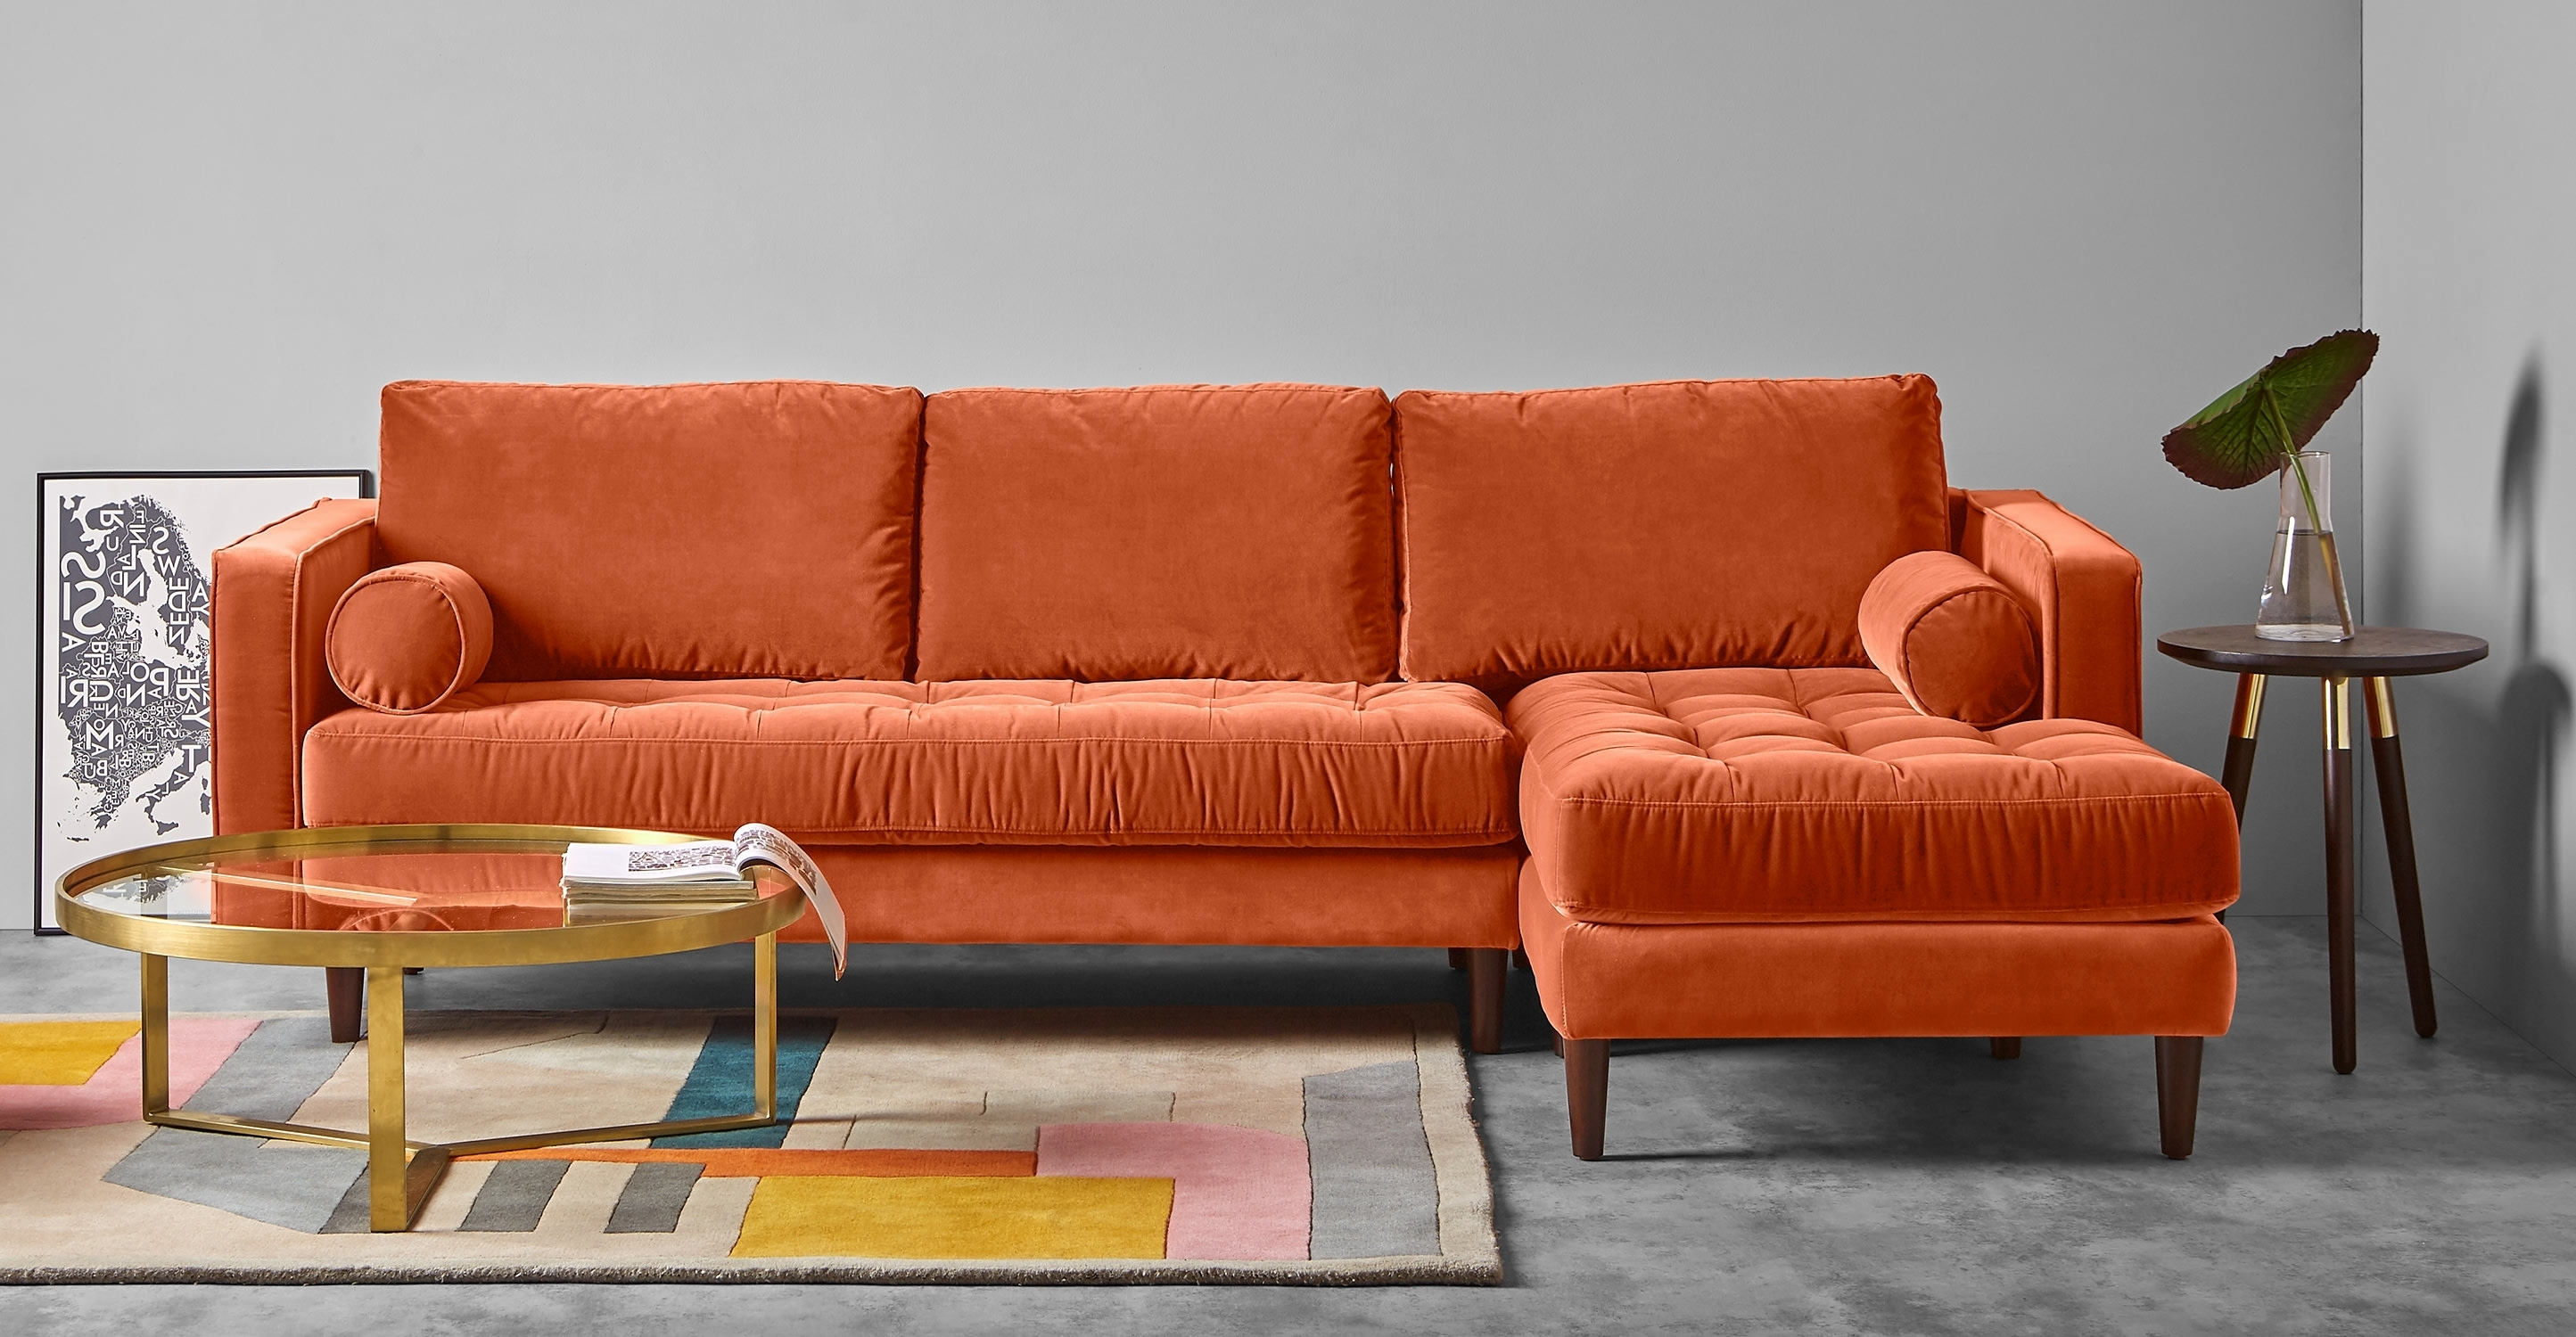 Leather Sectional Sofas Orange County Ca | Ezhandui Throughout Orange County Ca Sectional Sofas (View 6 of 10)